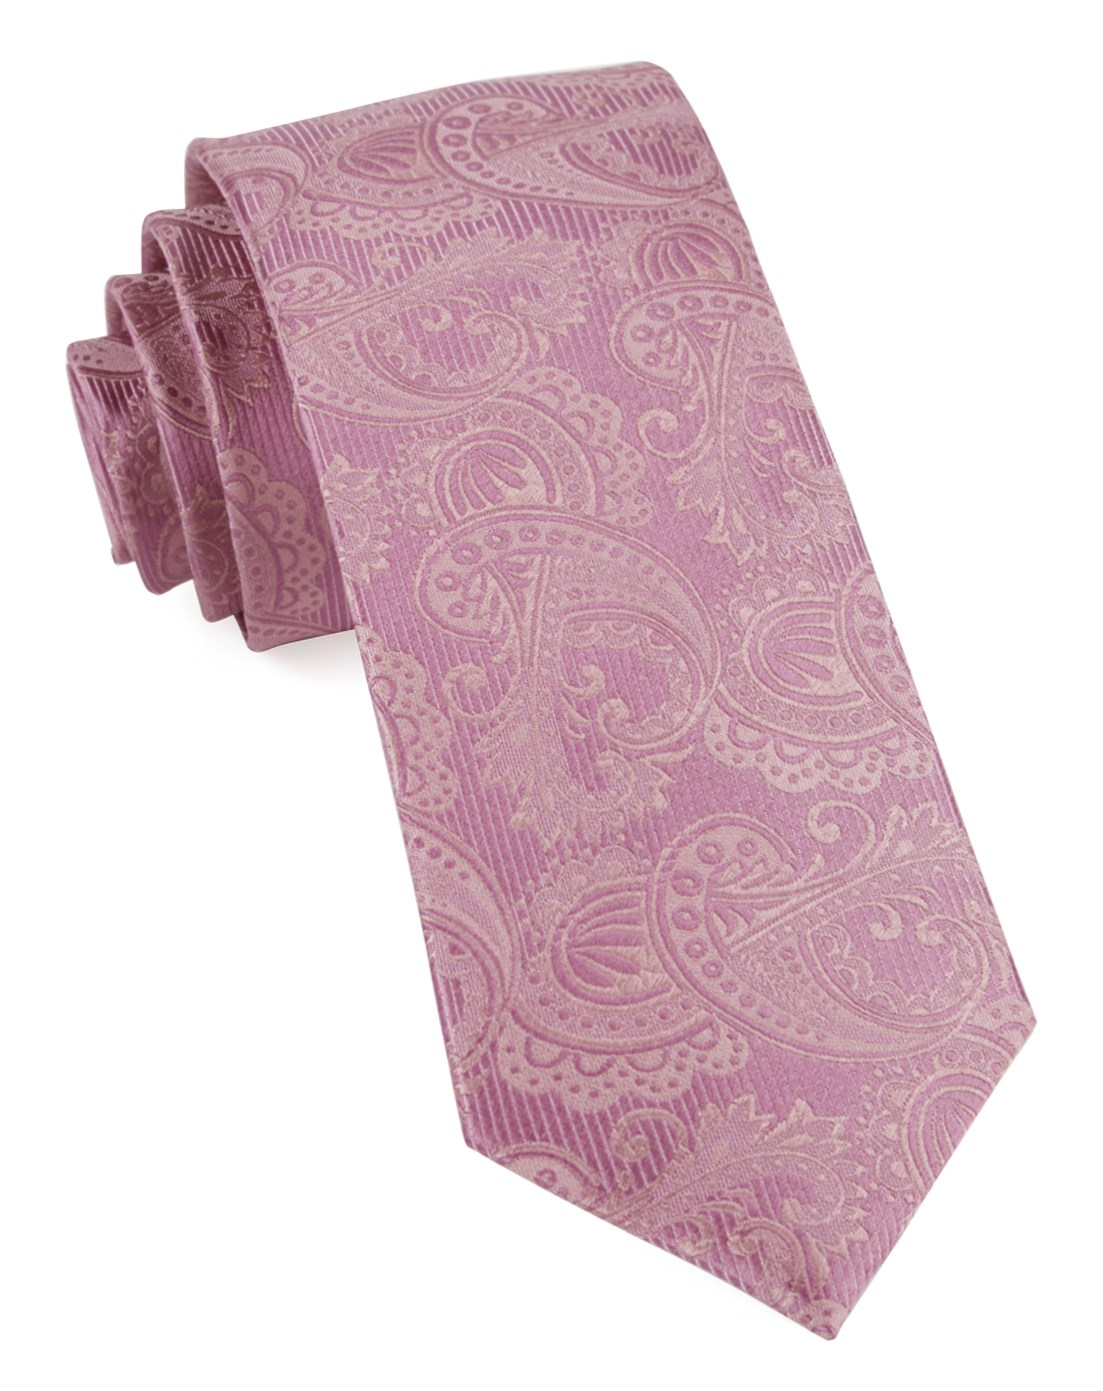 Twill Paisley Dusty Rose Tan Wedding Ties Tie And Pocket Square